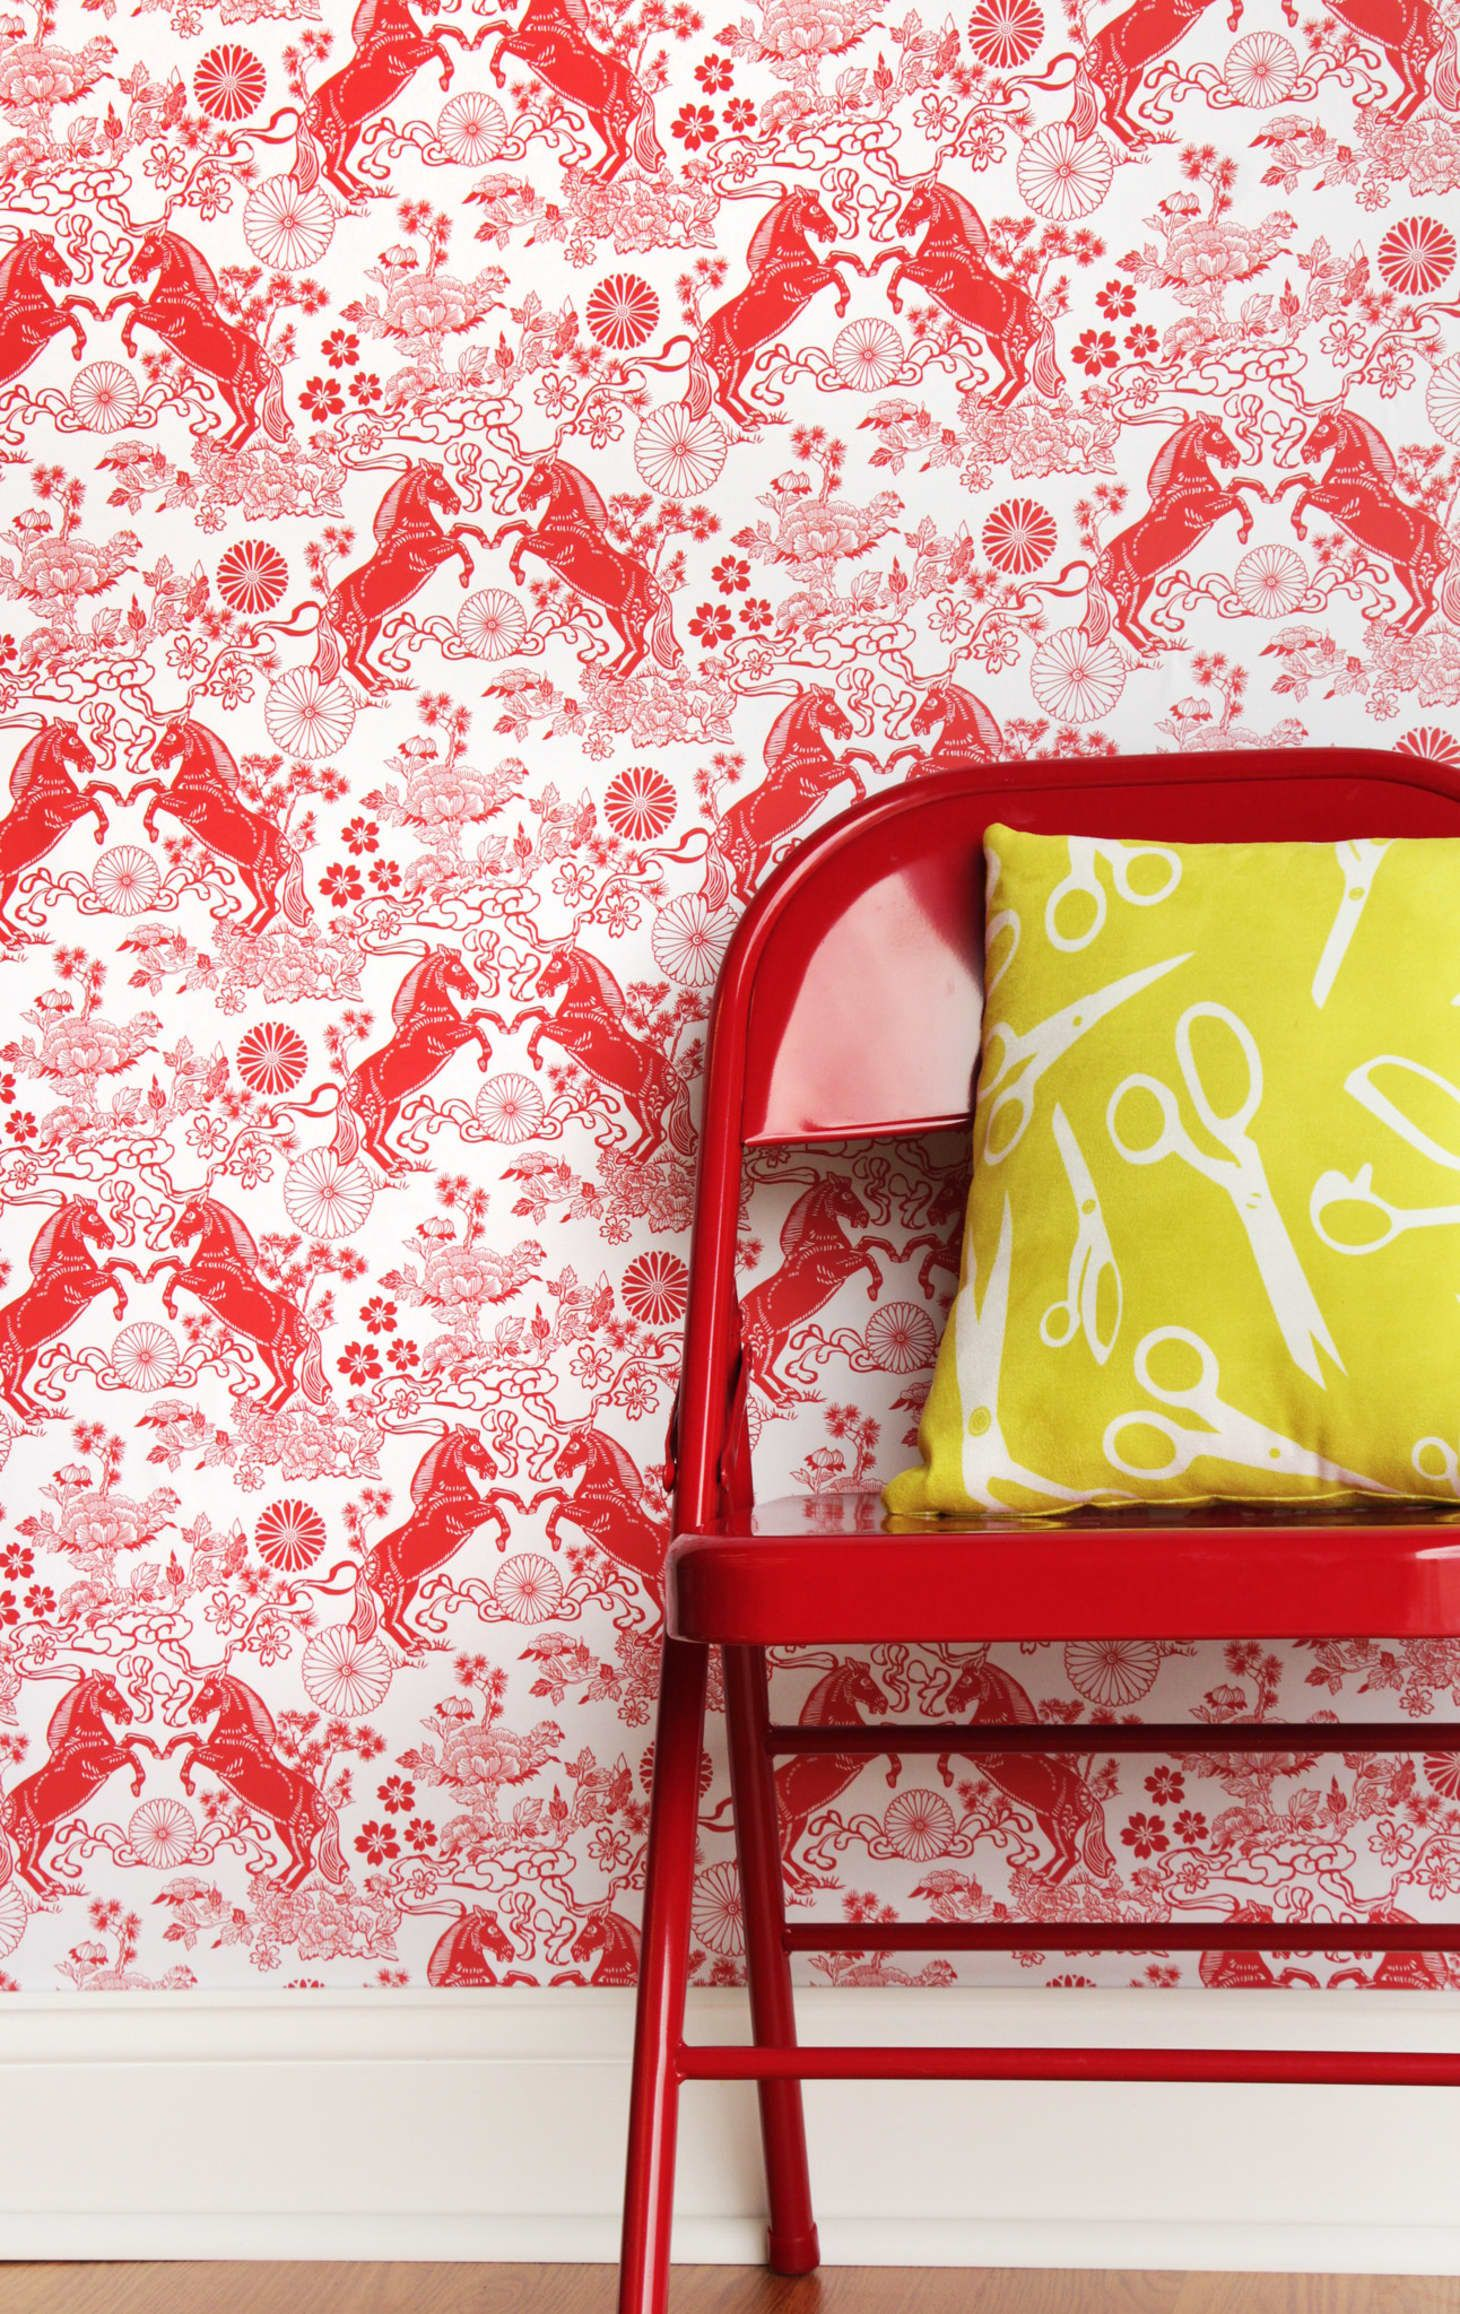 15 Removable Wallpaper Companies To Know Temporary Wallpaper Apartment Wallpaper Companies Temporary Wallpaper